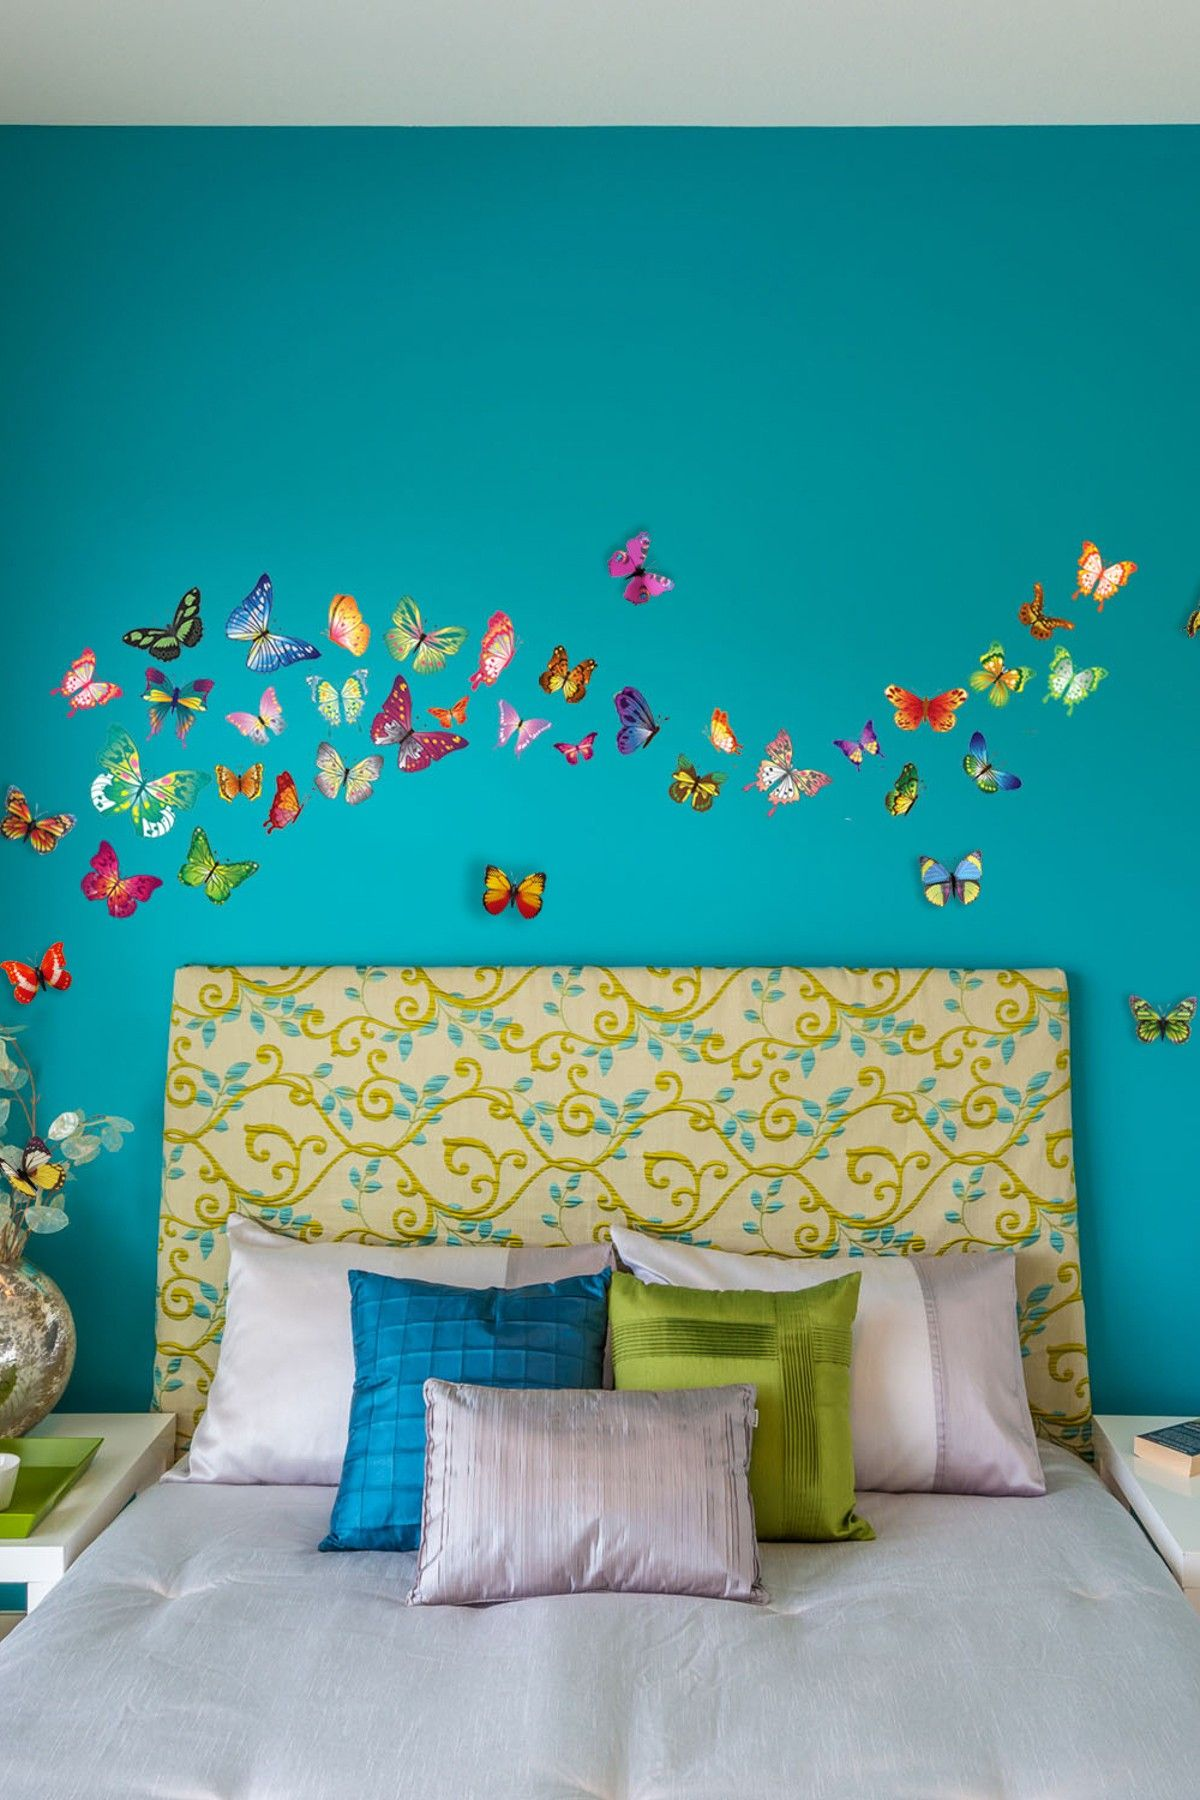 Multi Butterflies 3D Wall Decal